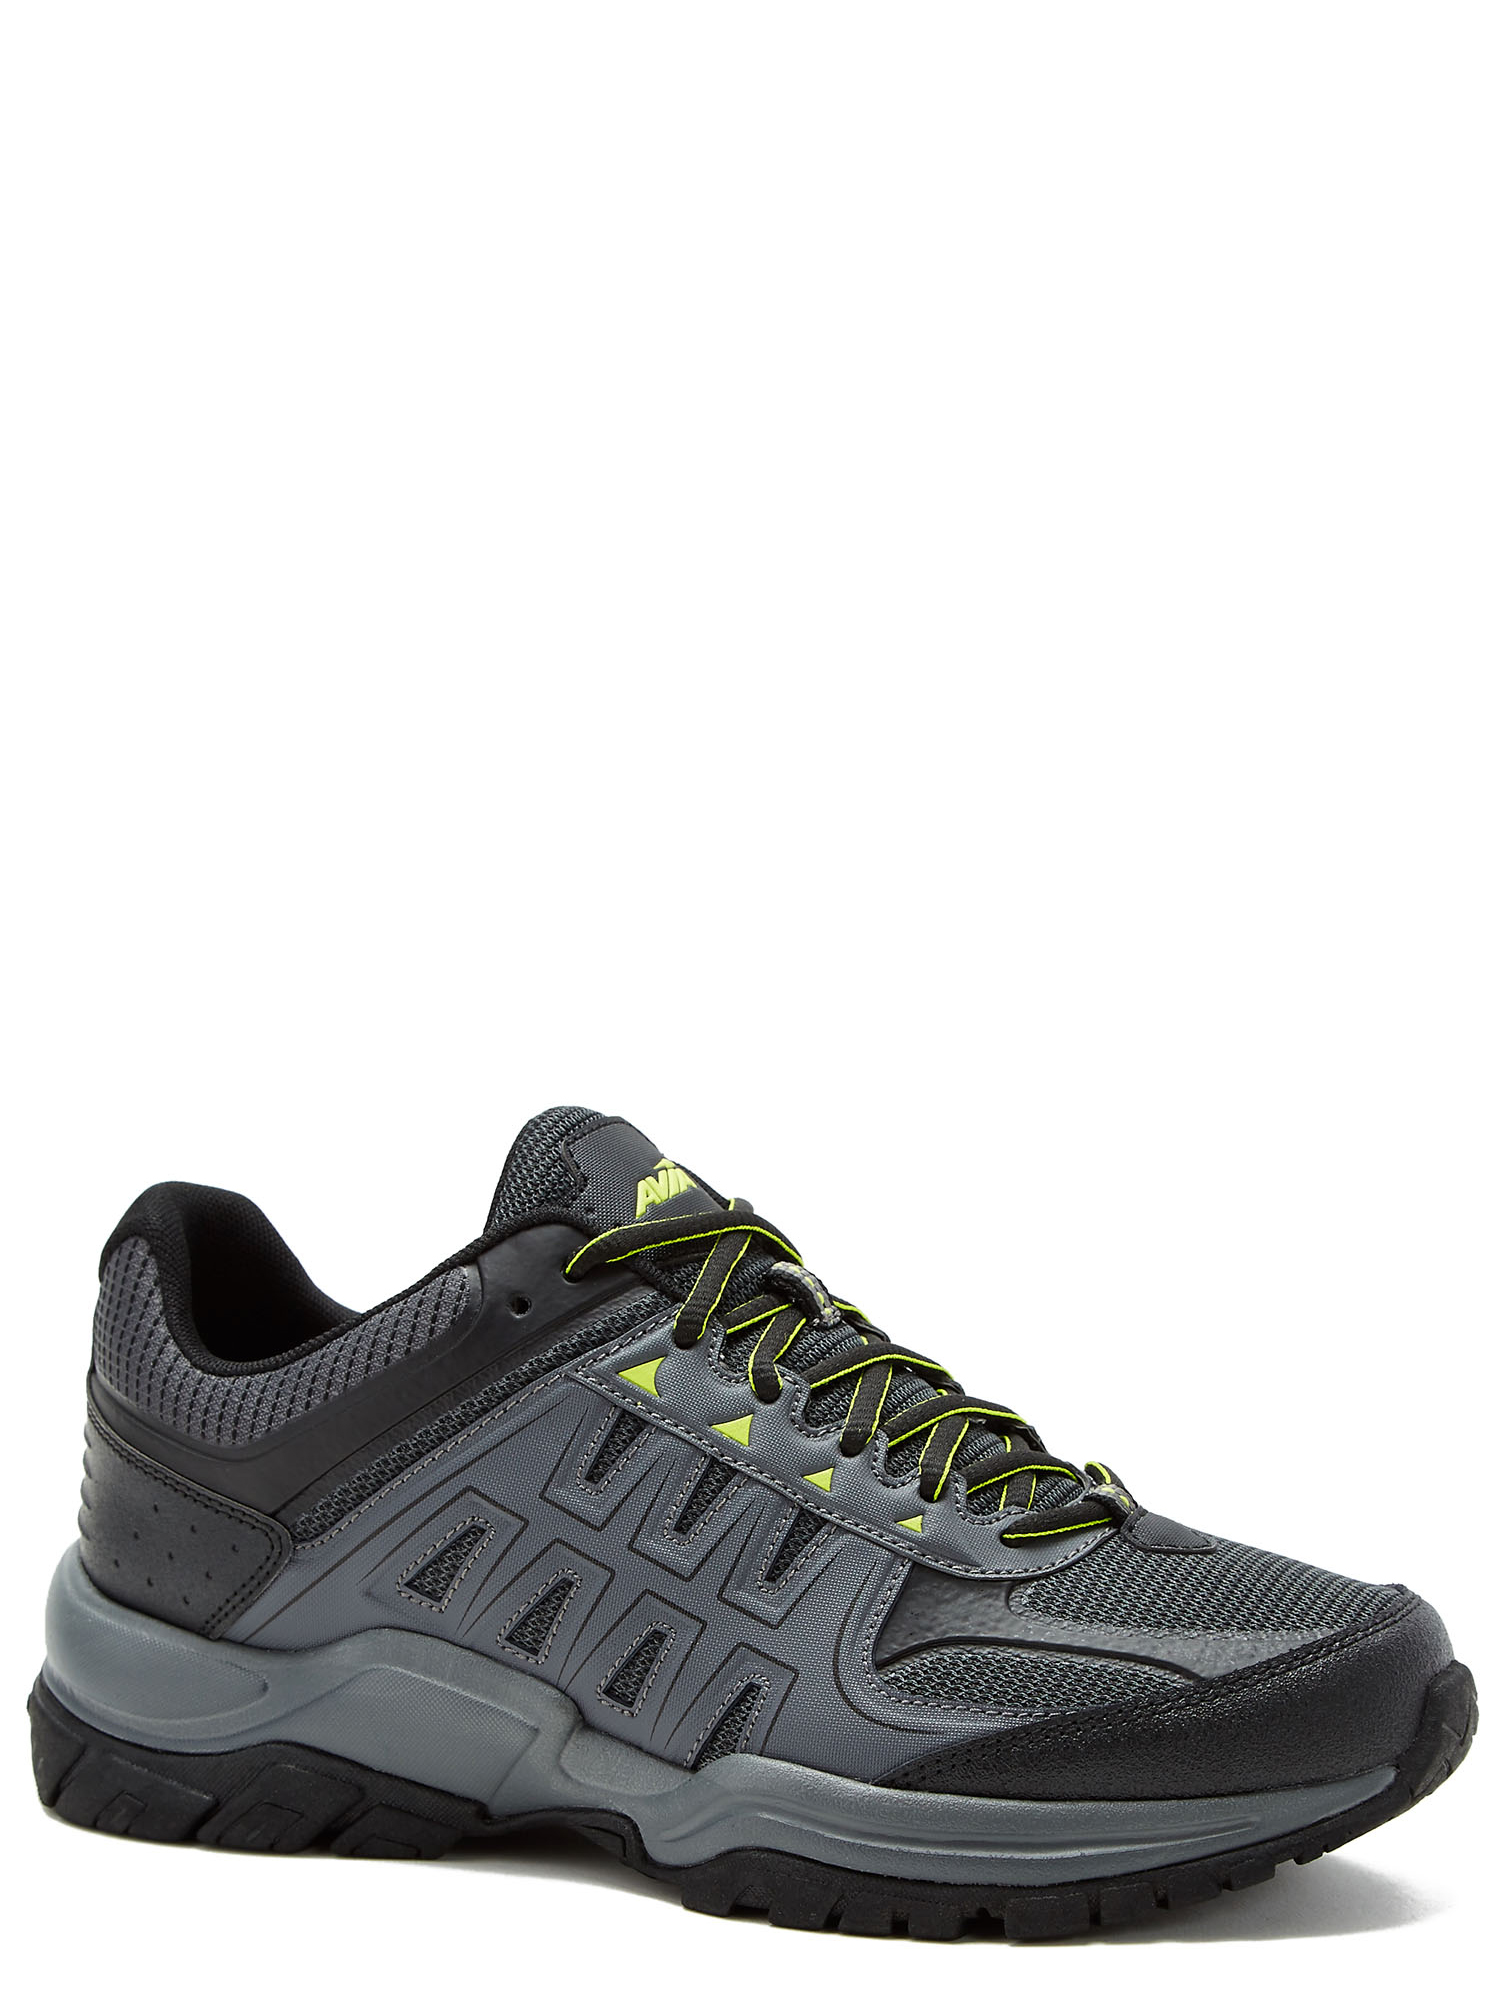 Avia Men's Jag Athletic Shoe